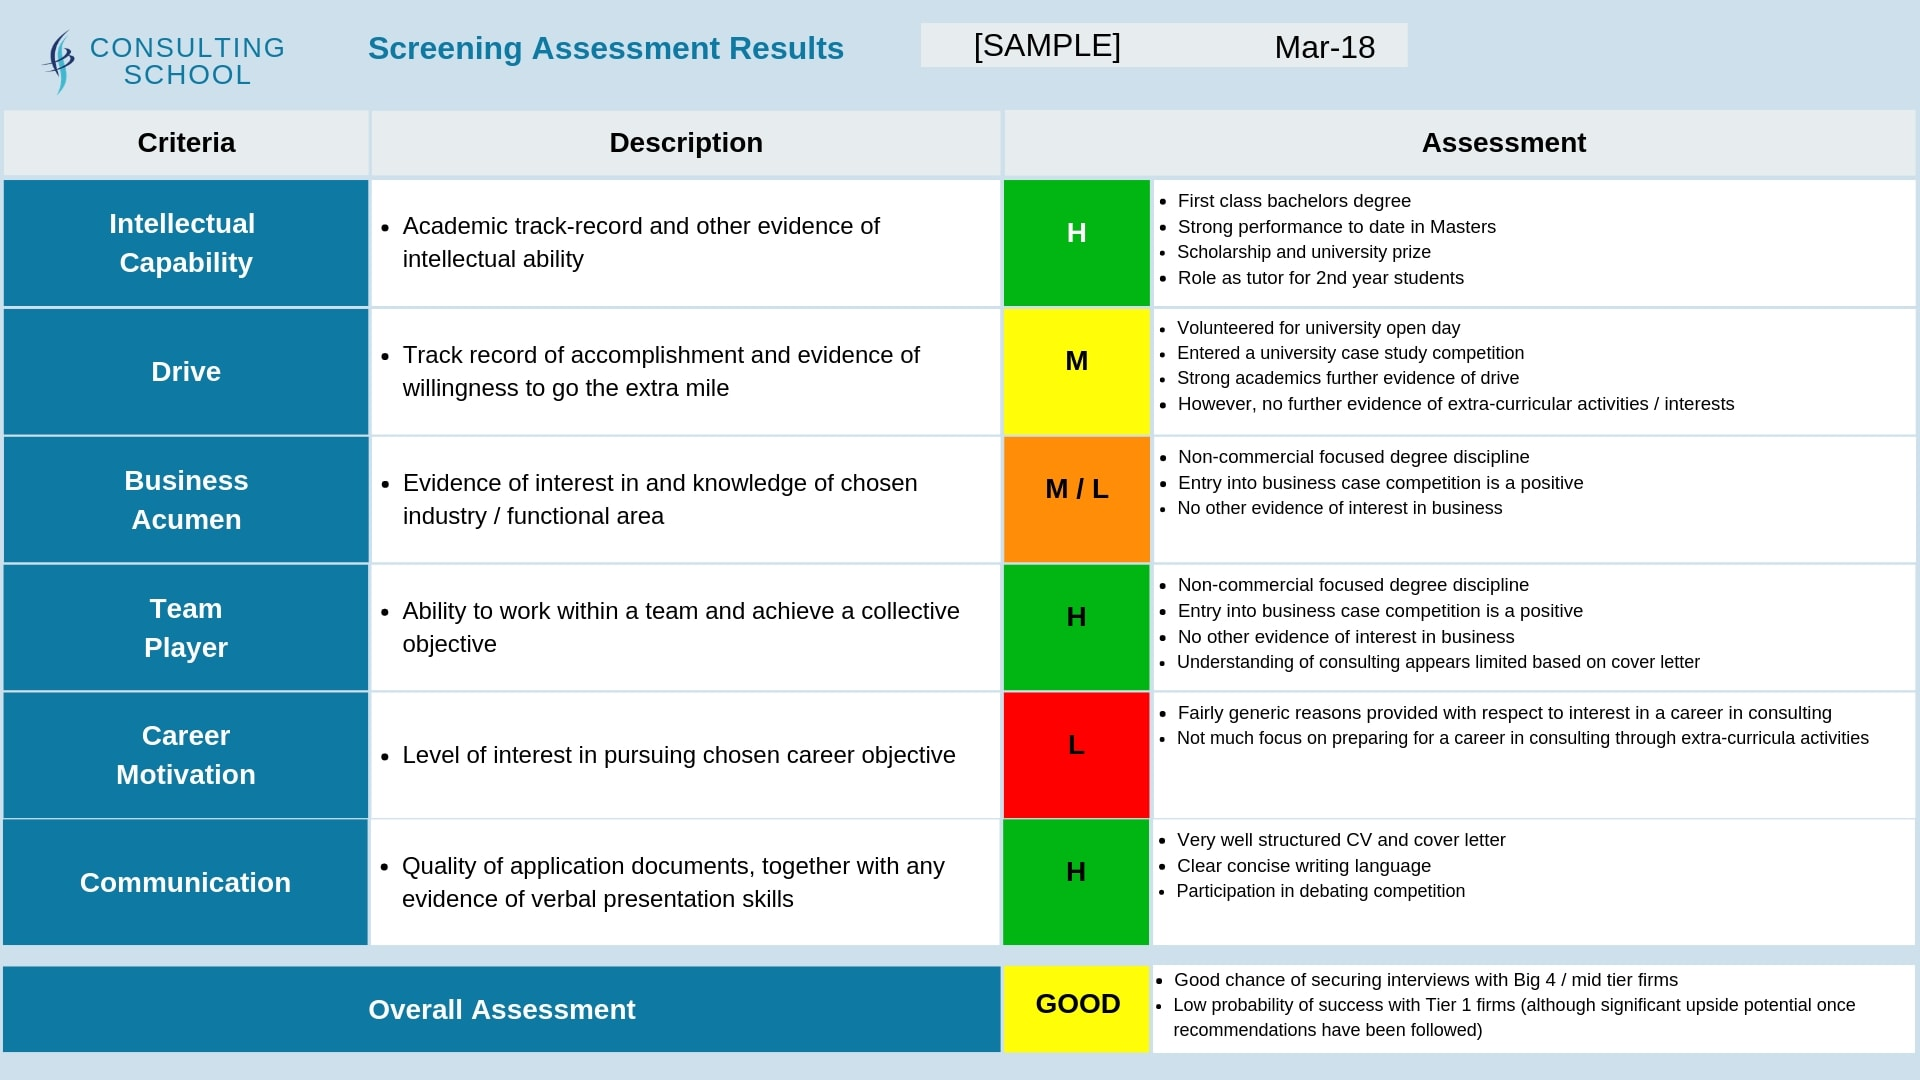 5. We provide the results of our full screening assessment